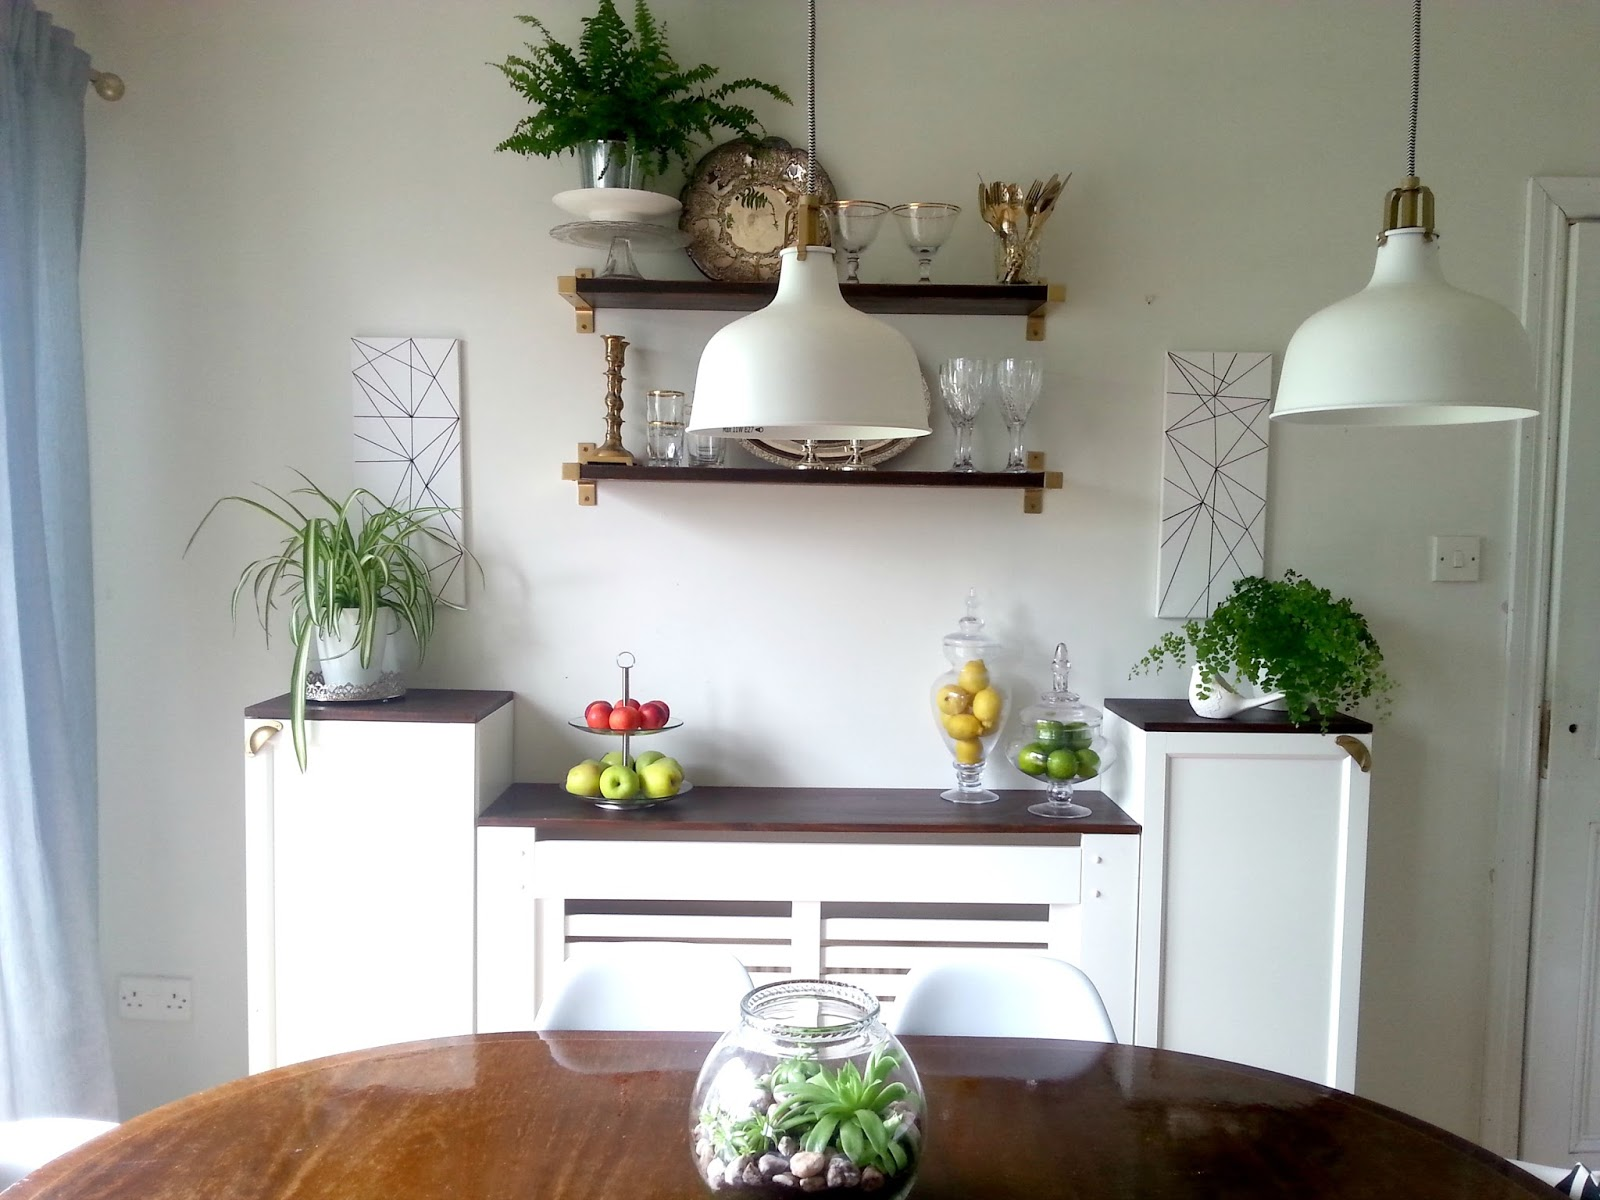 Ikea Hack Bookcase: Ikea-hack For Built-in Dining Room Storage...when You Have